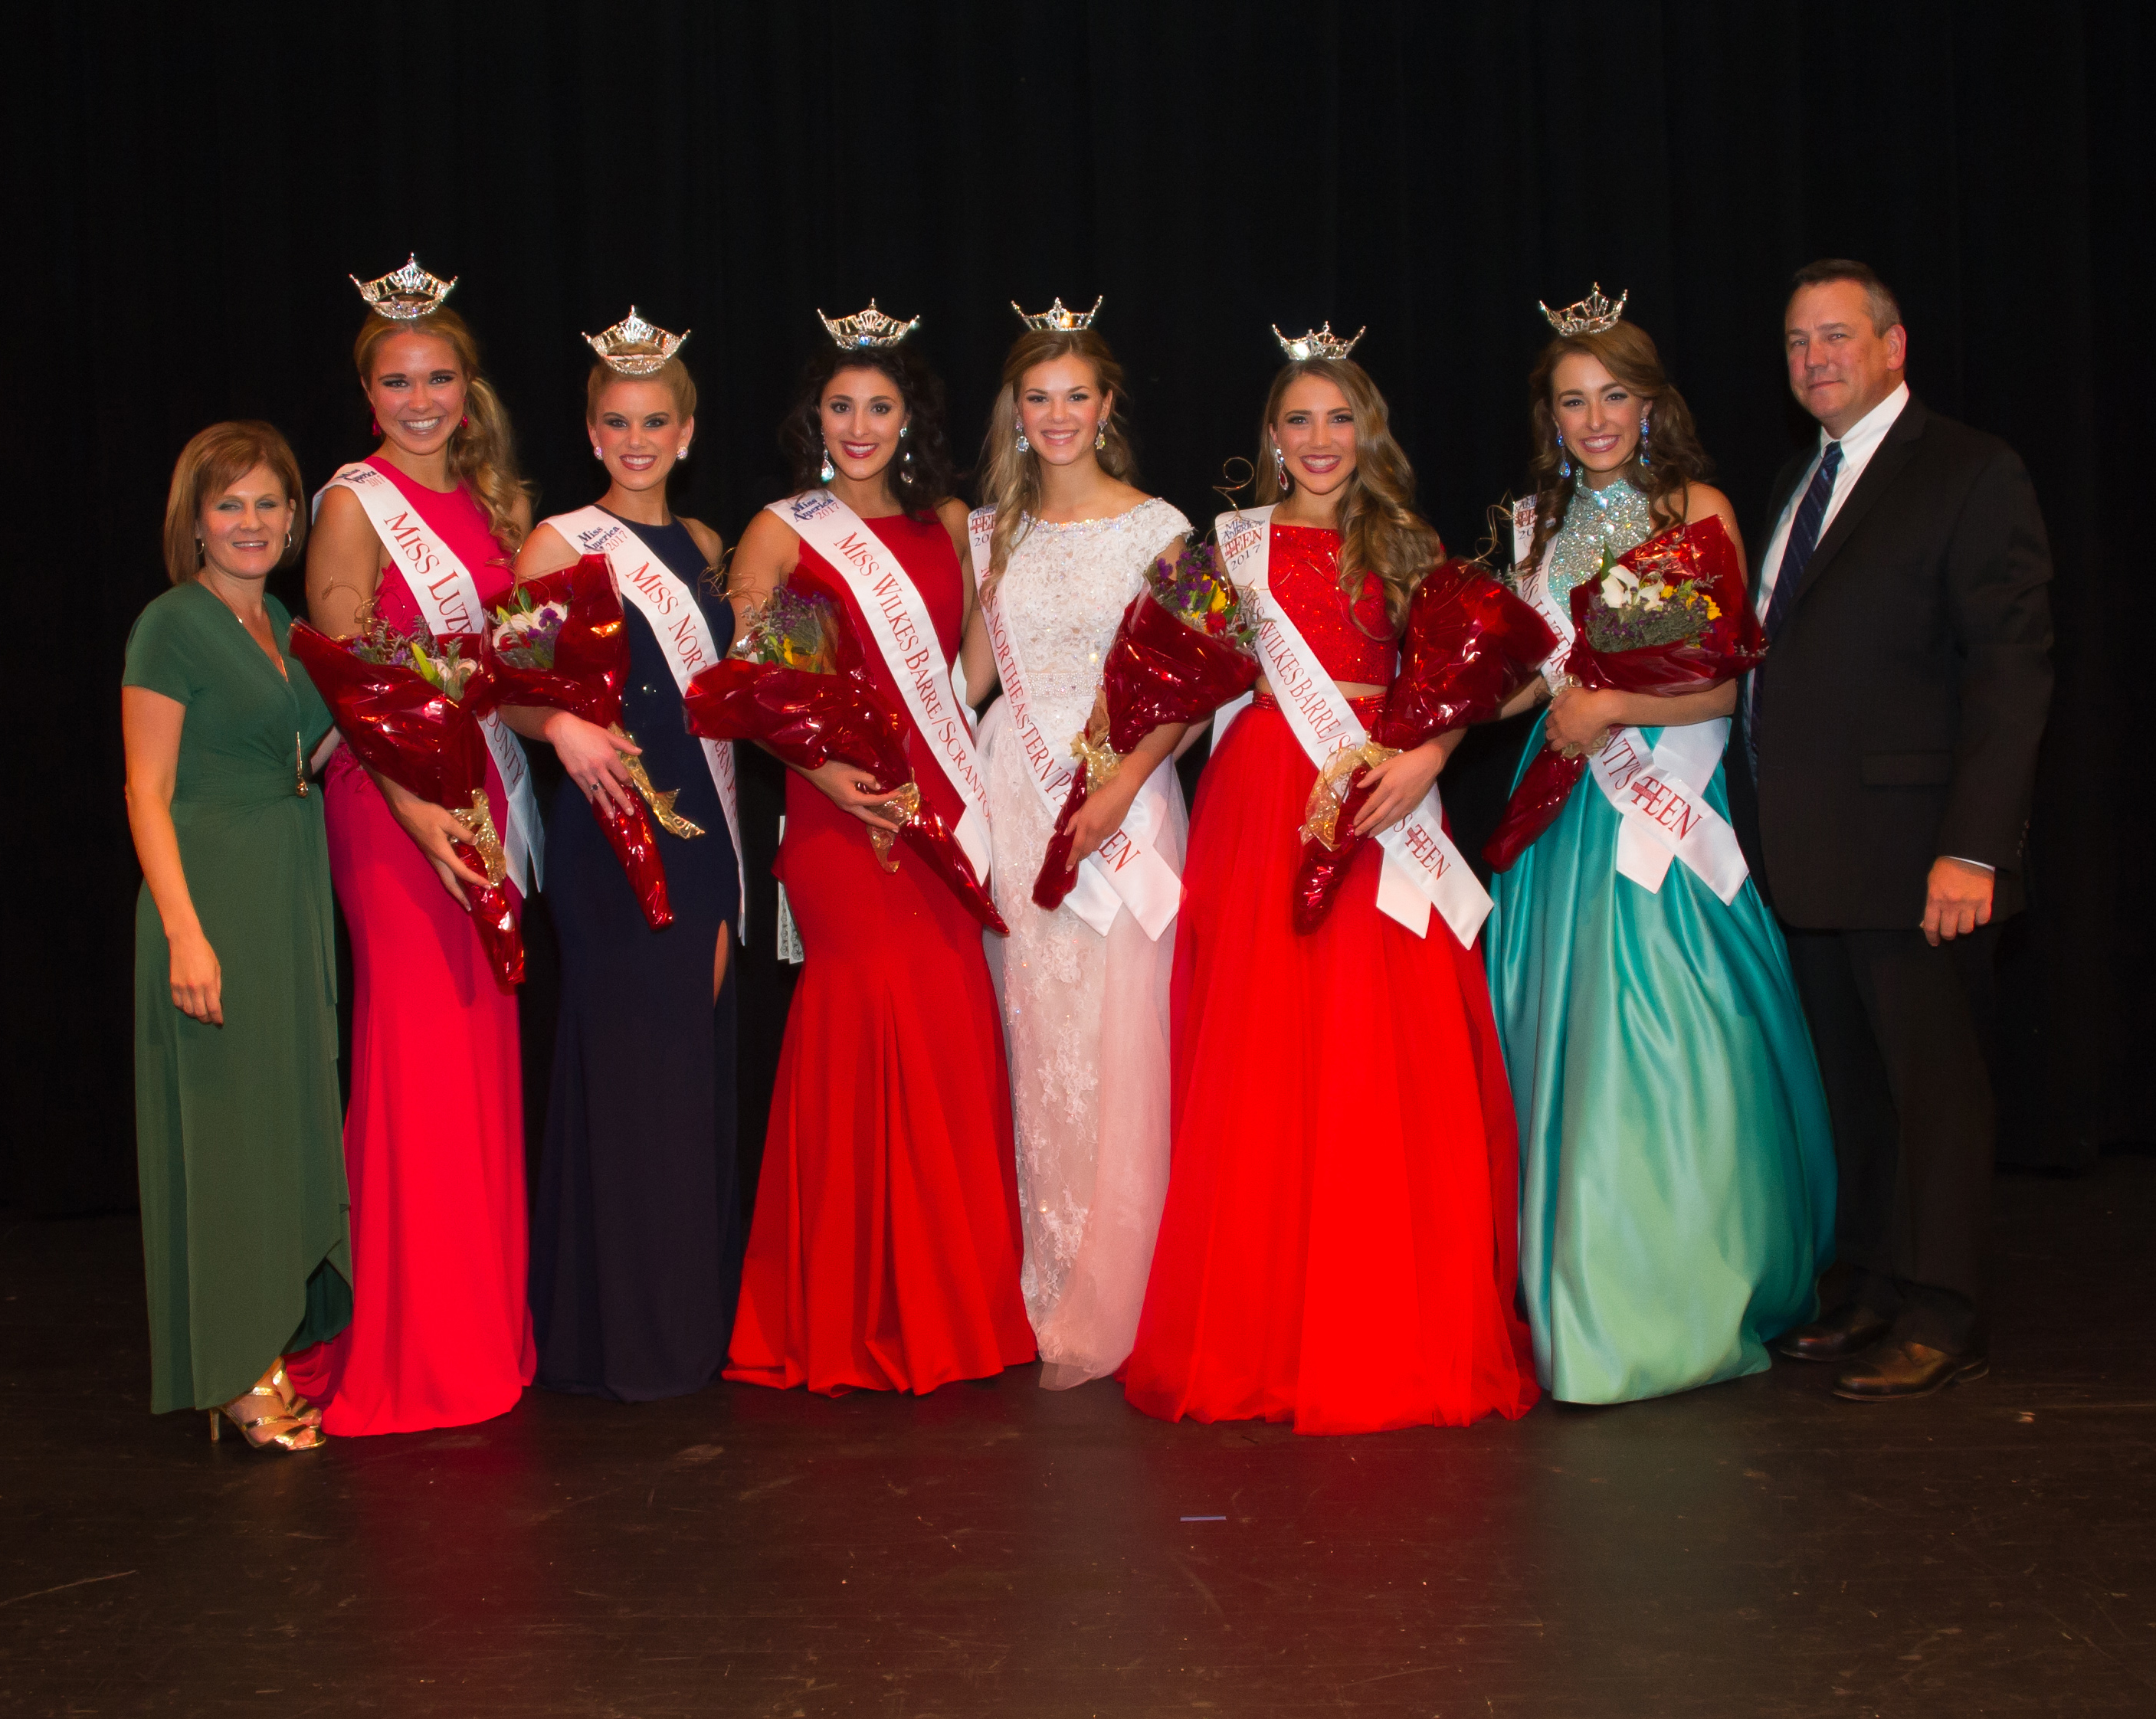 The 2017 NEPA Scholarship Pageant